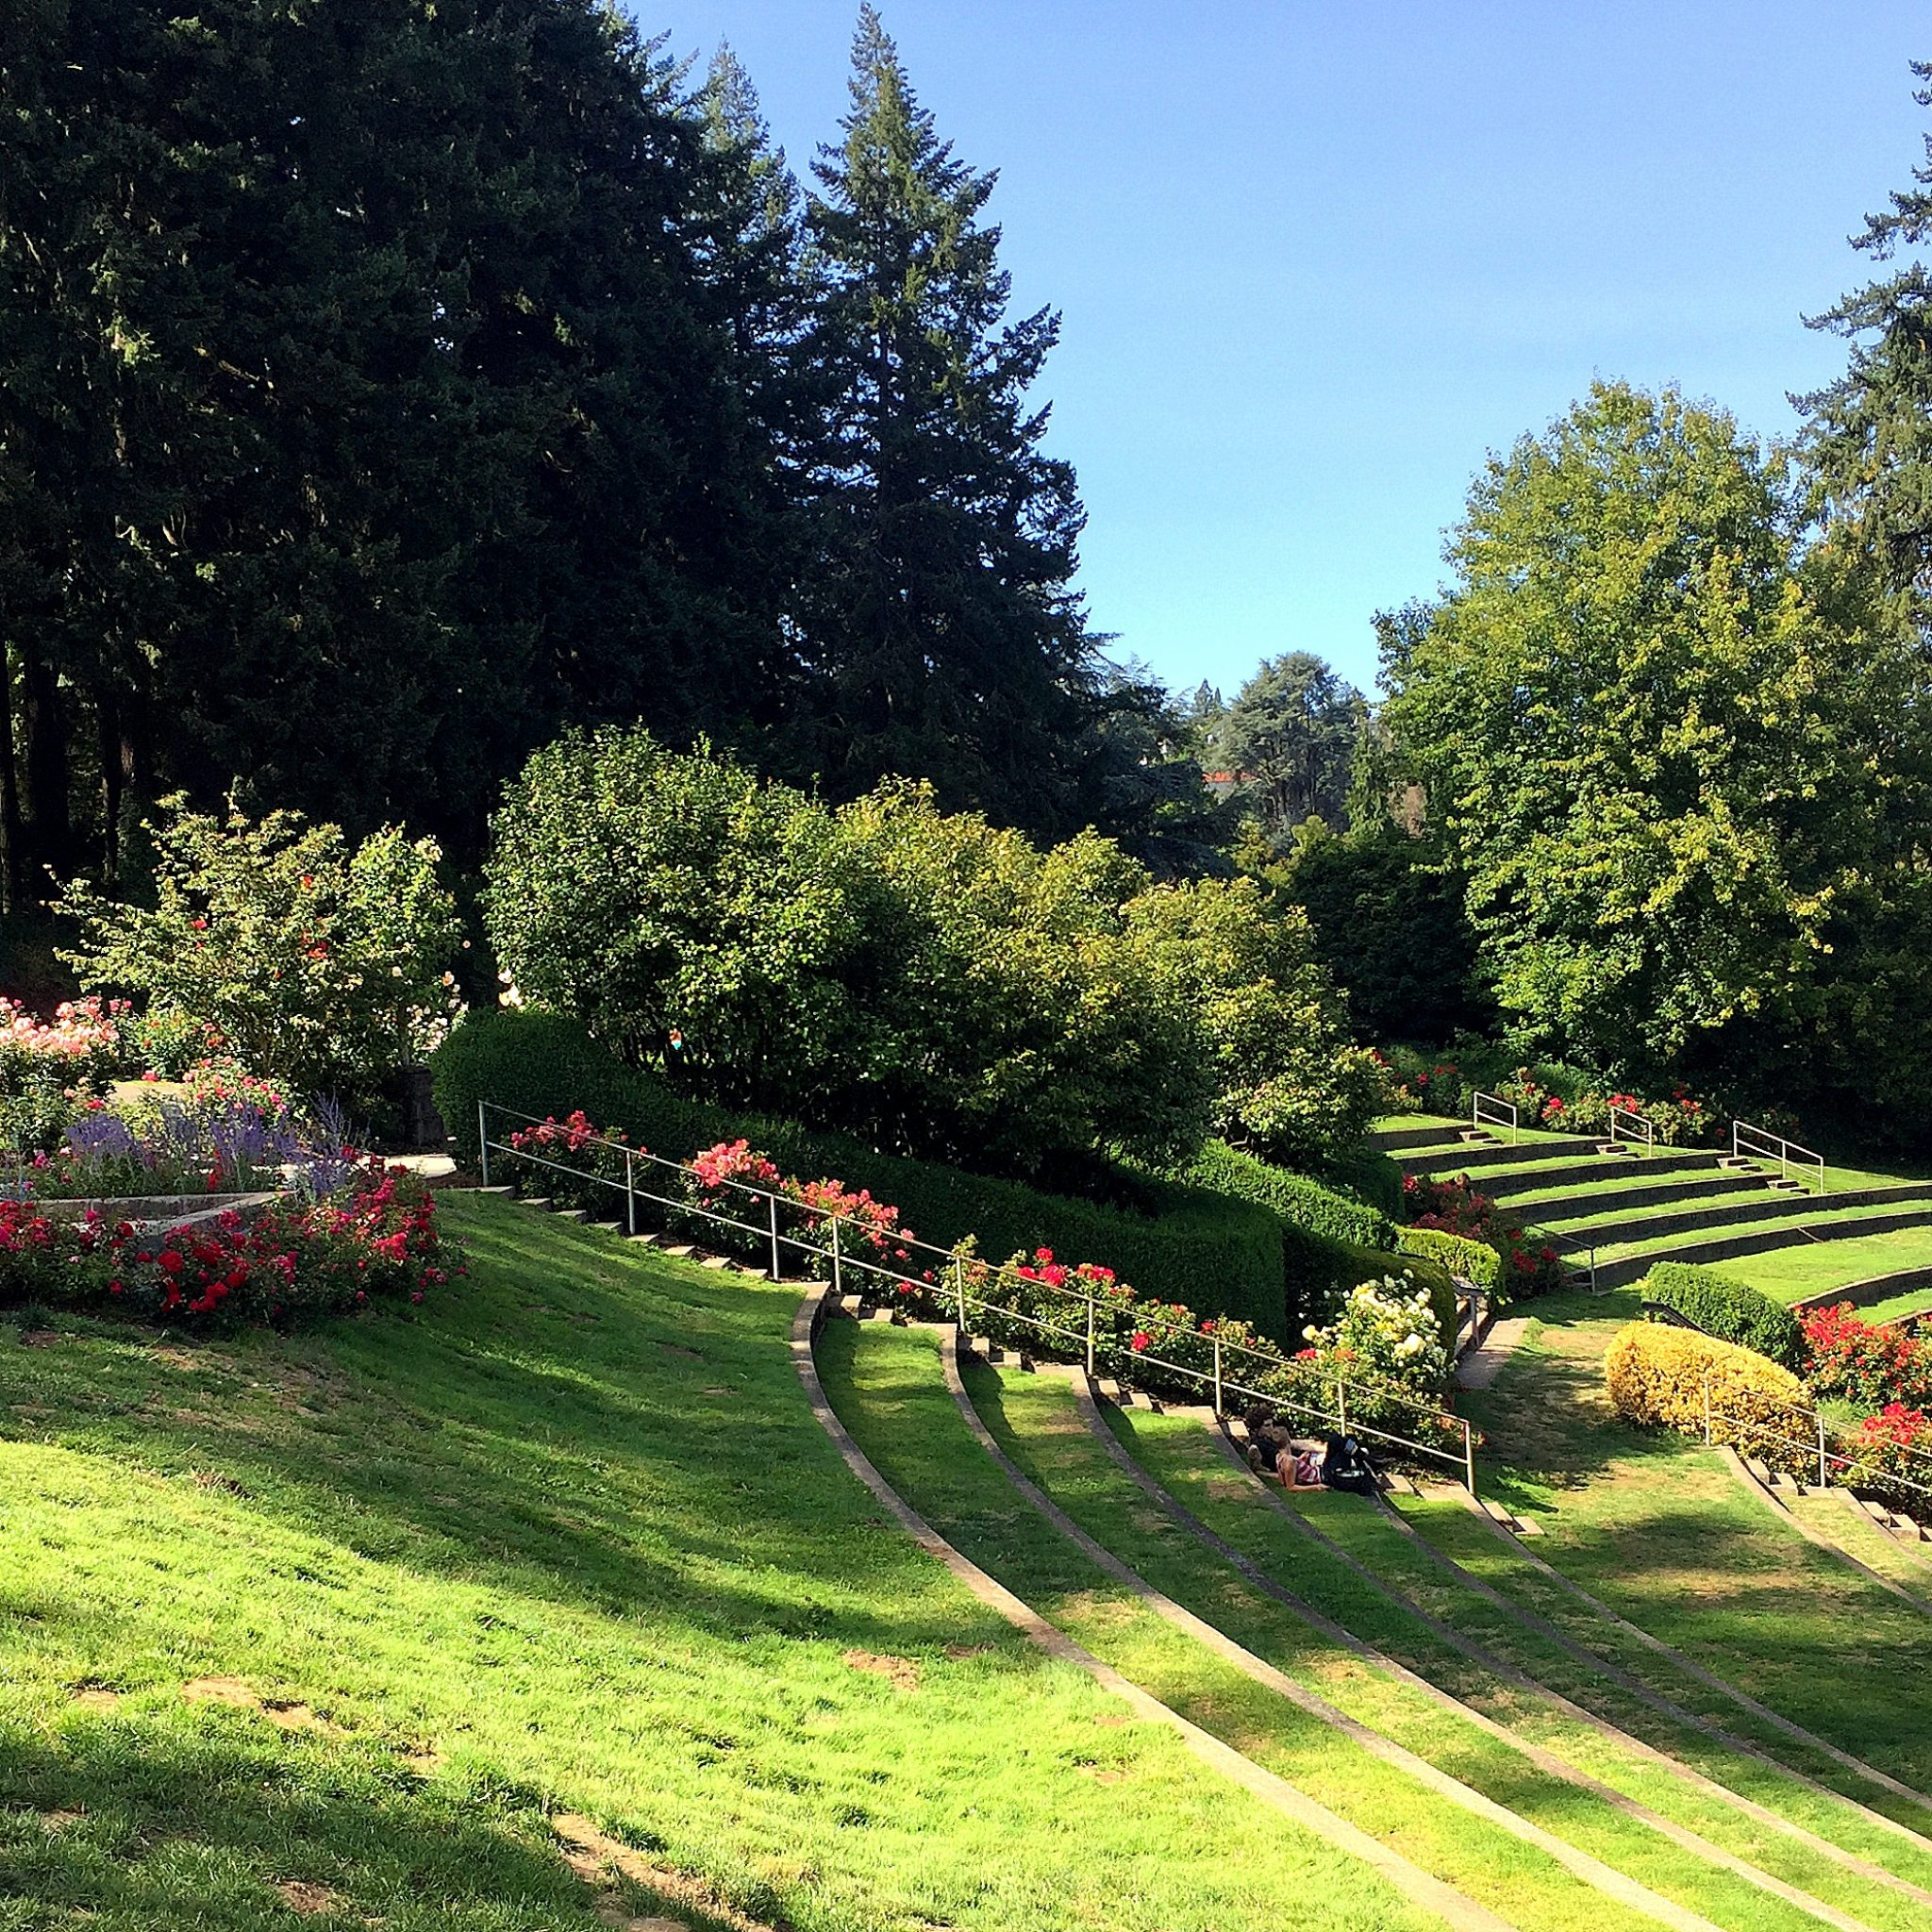 The stunning public park known as the Rose Garden is home to over 10,000 roses.